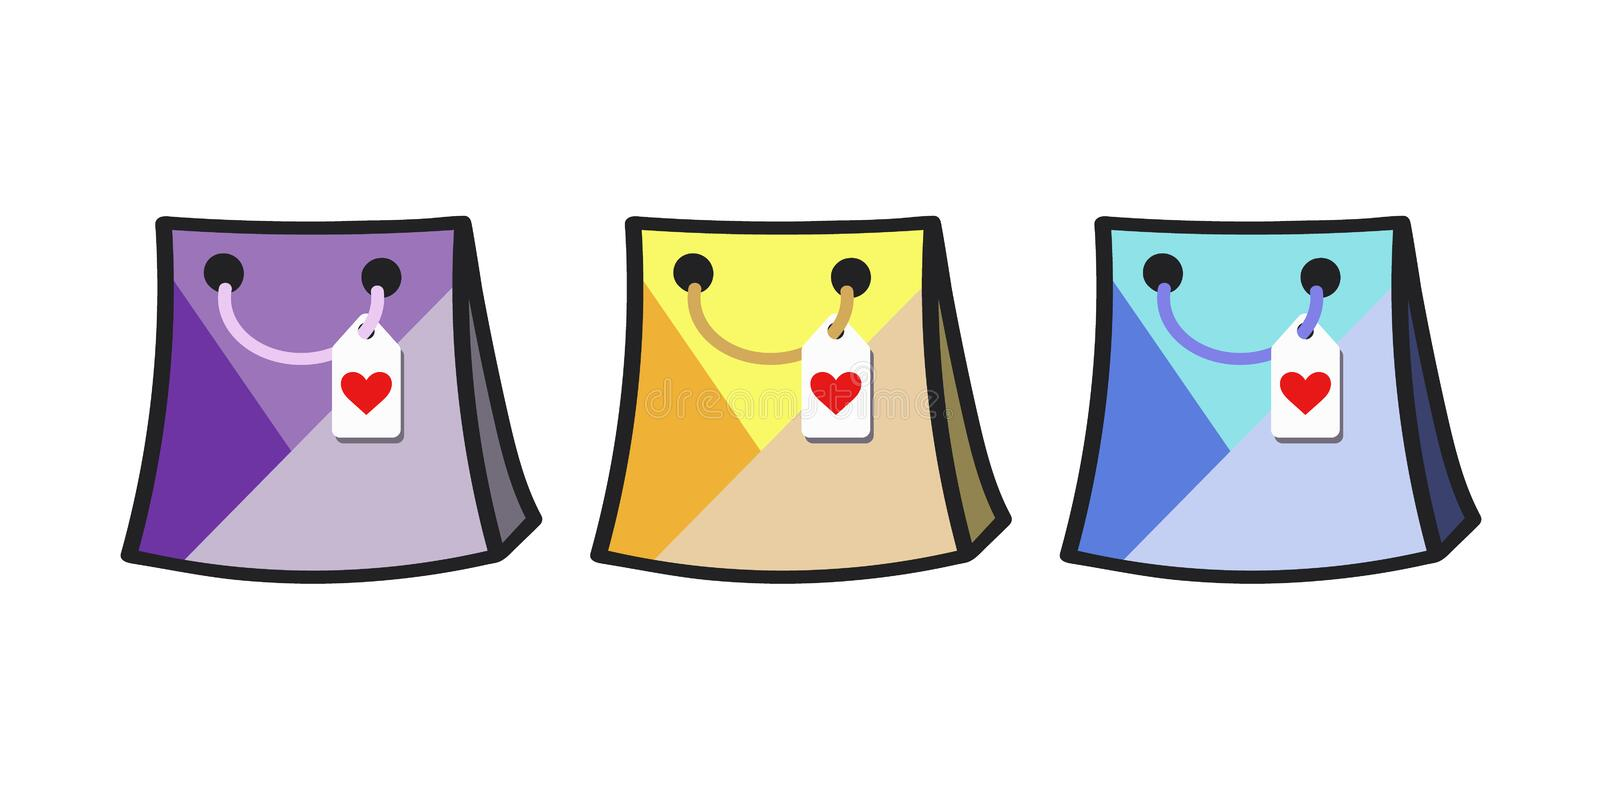 Gift bag icon set with heart tags. Flat vector in purples, yellows and blues. vector illustration